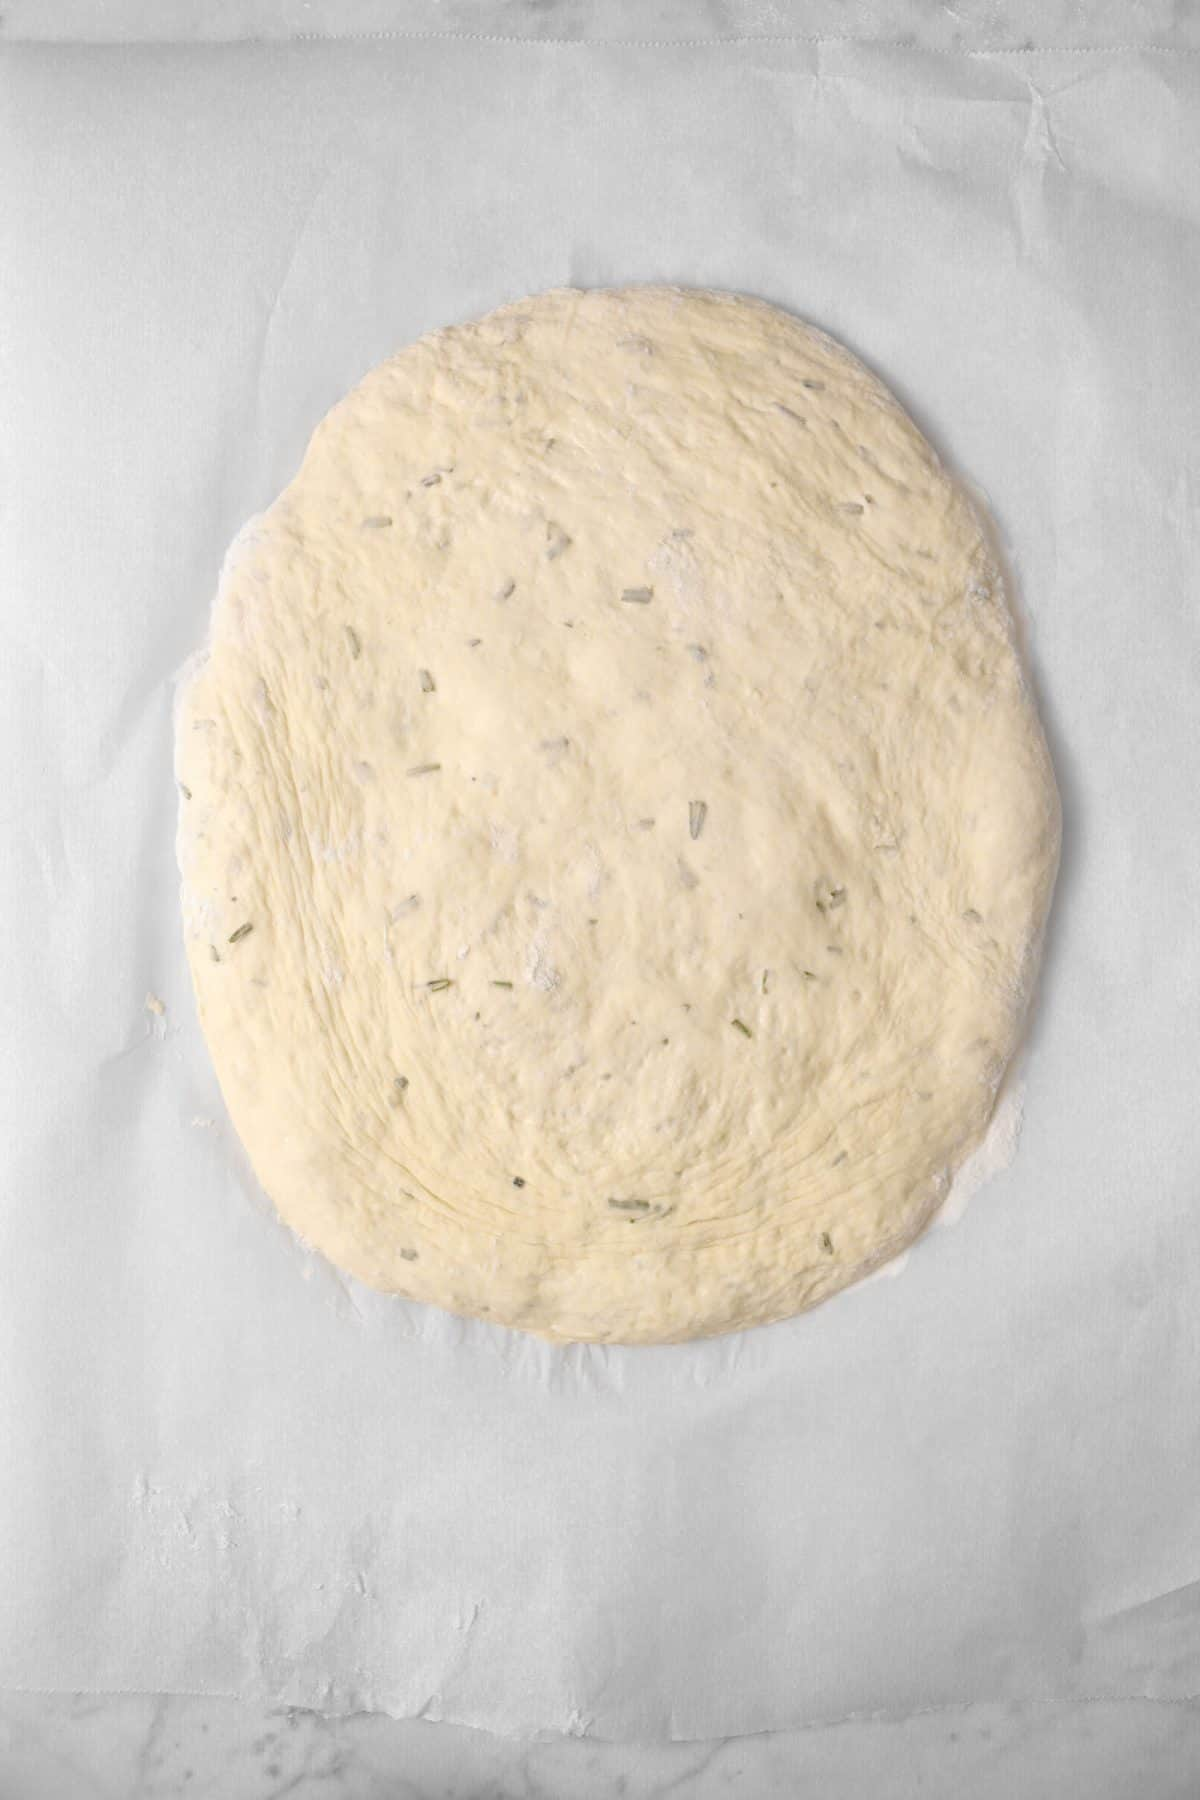 focaccia dough pressed down into a small oval on a piece of parchment